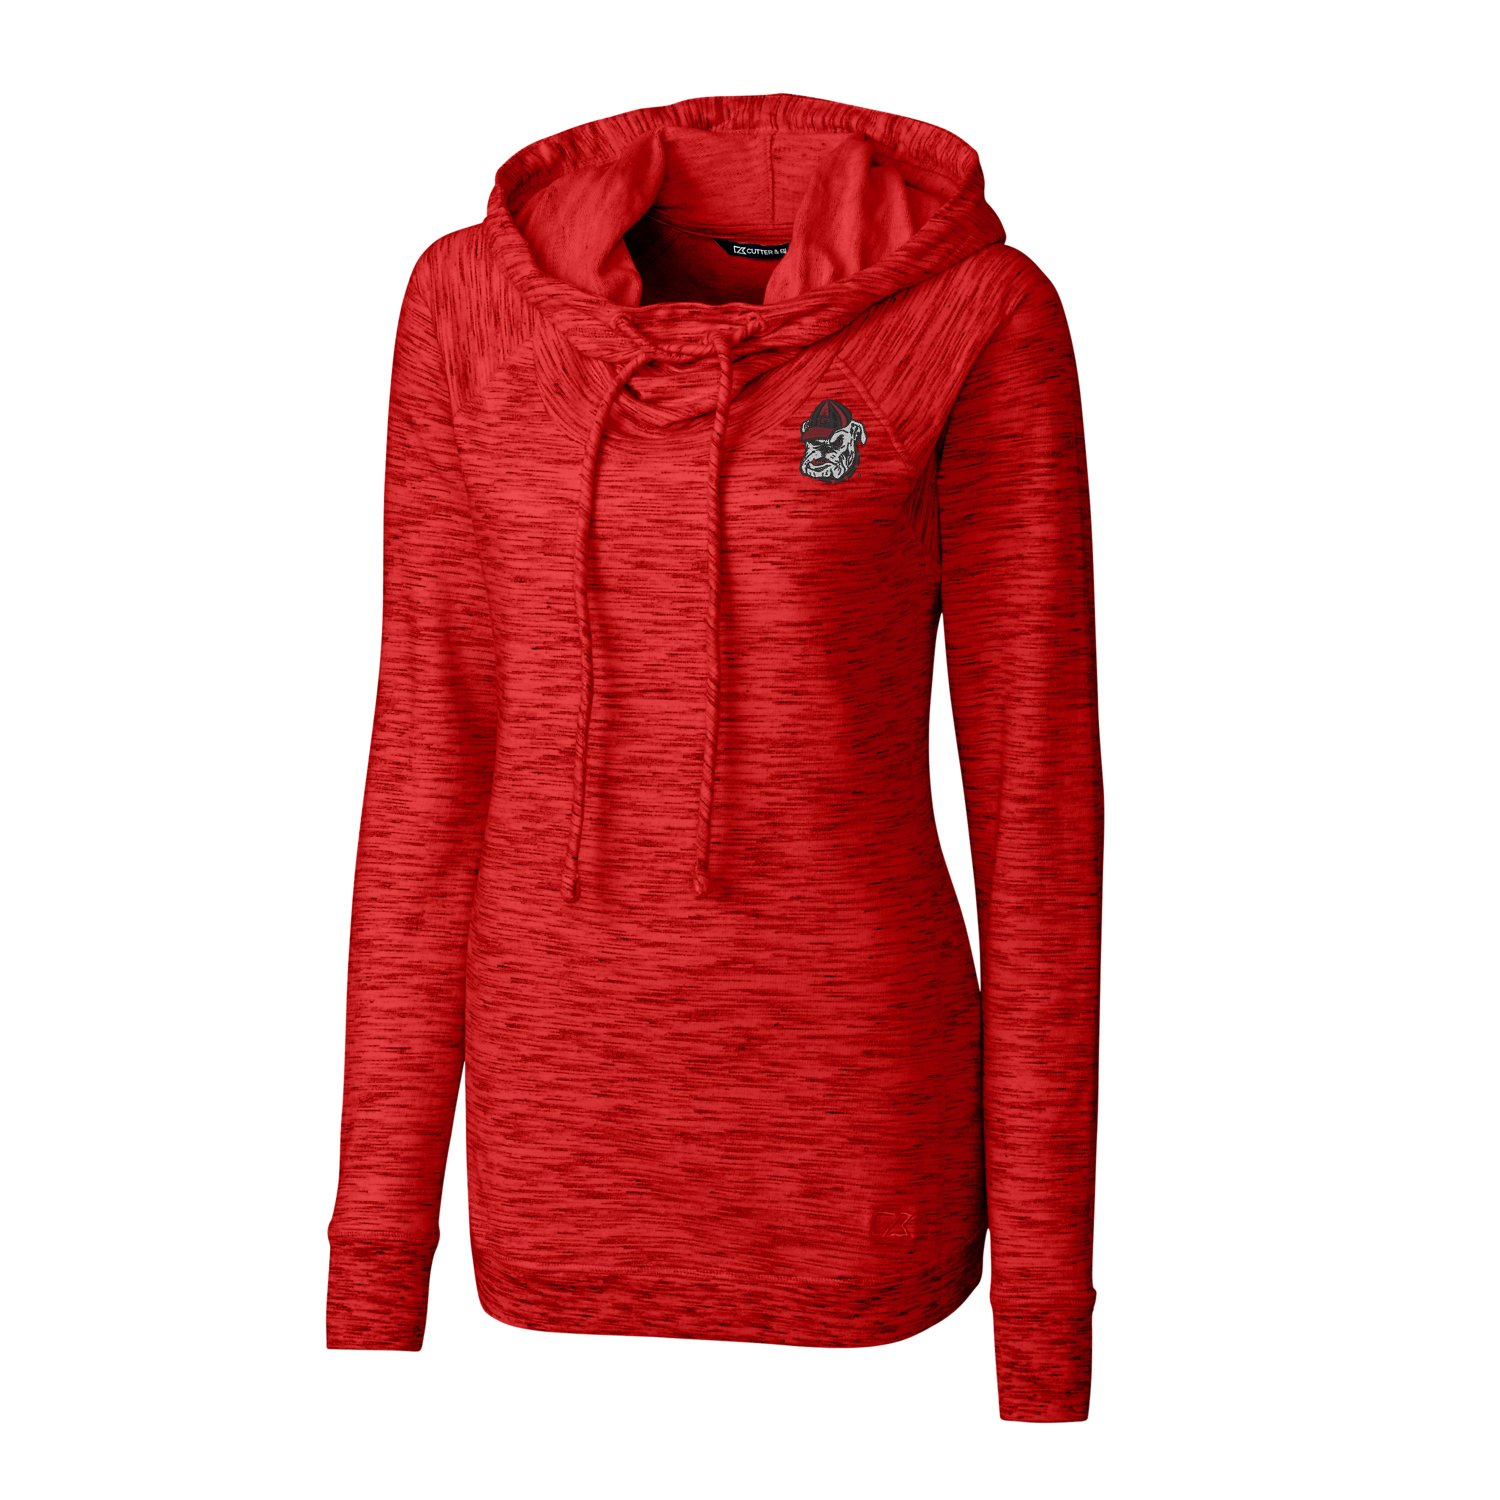 Long Sleeve Tie Breaker Hoodie B0751GV224 Large|Wisconsin Badgers Large